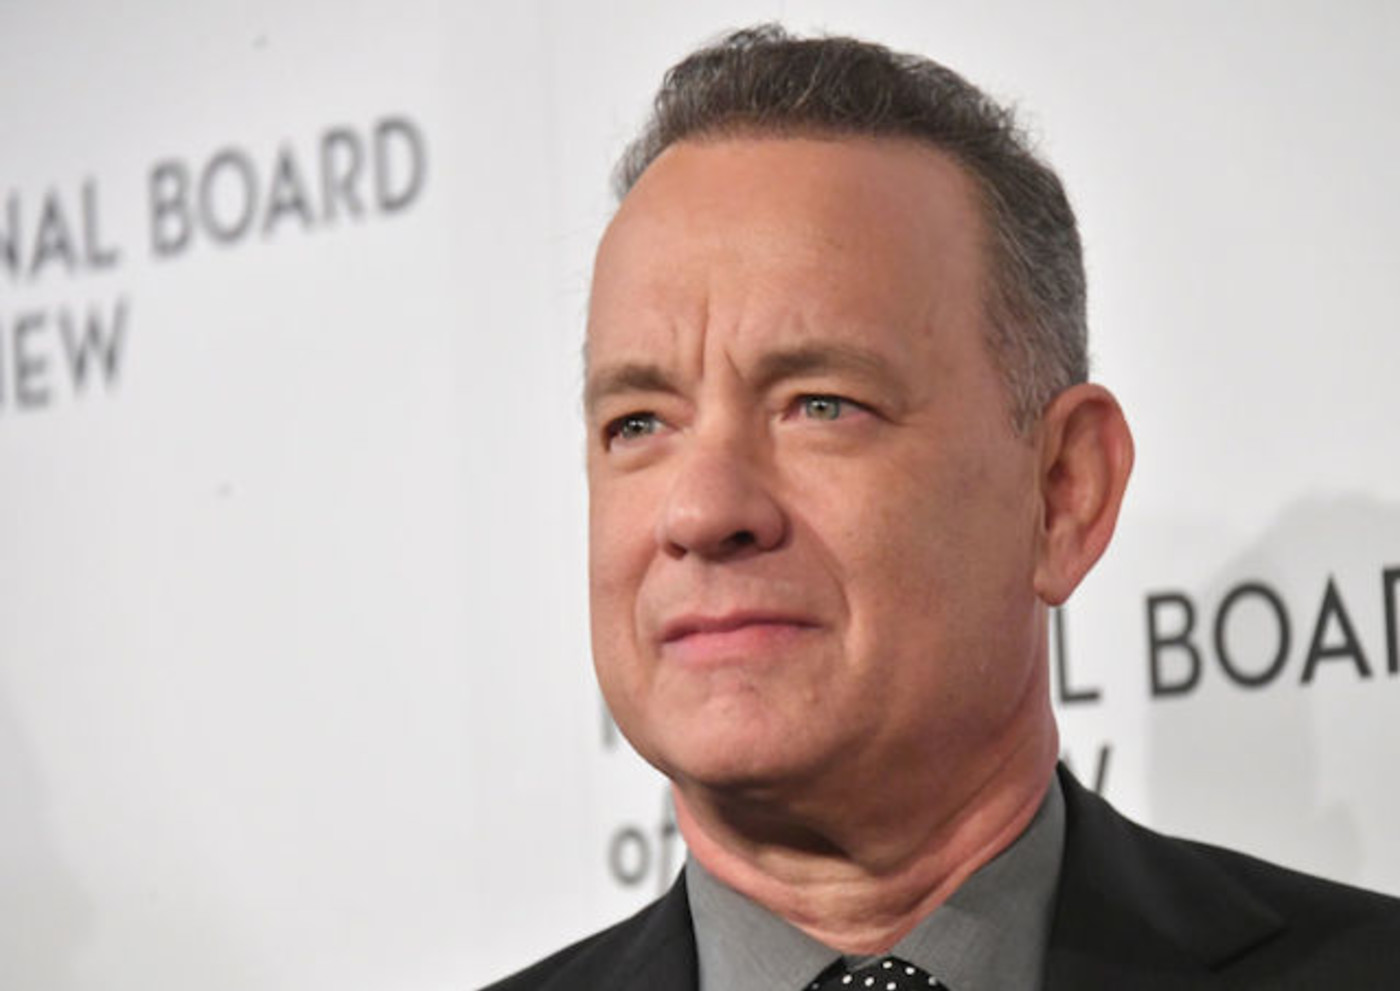 This is a picture of Tom Hanks.